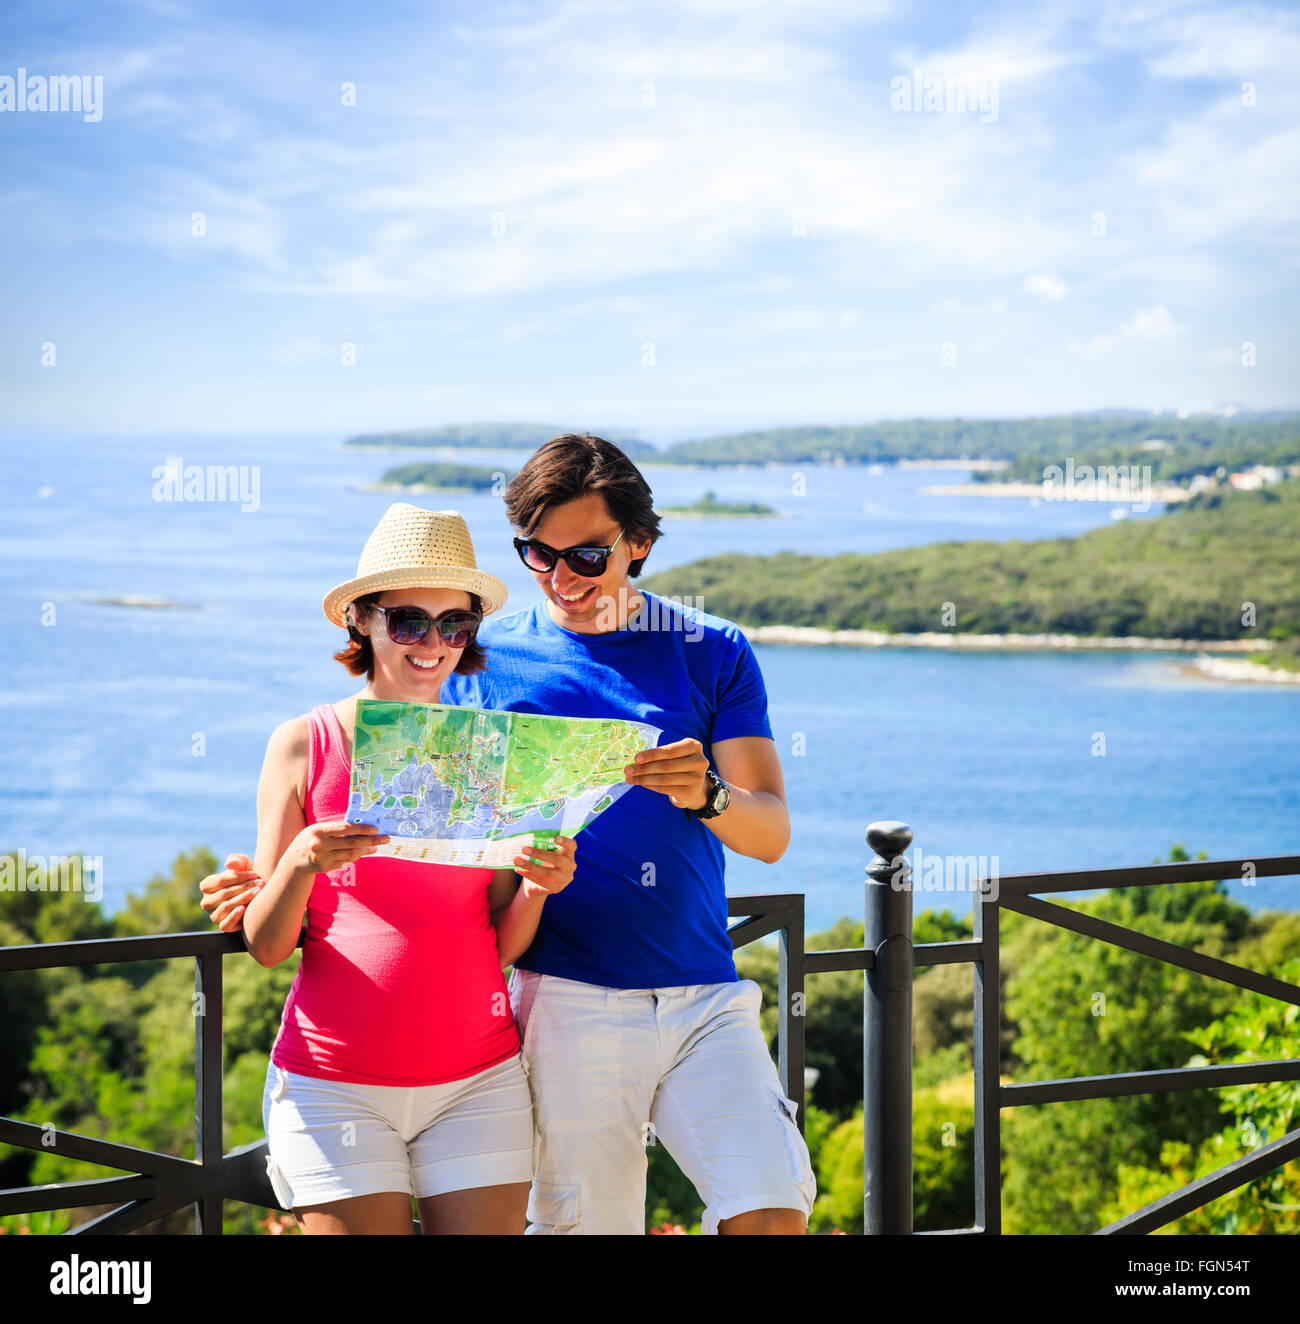 Couple Looking at Map by the Sea - Stock Image